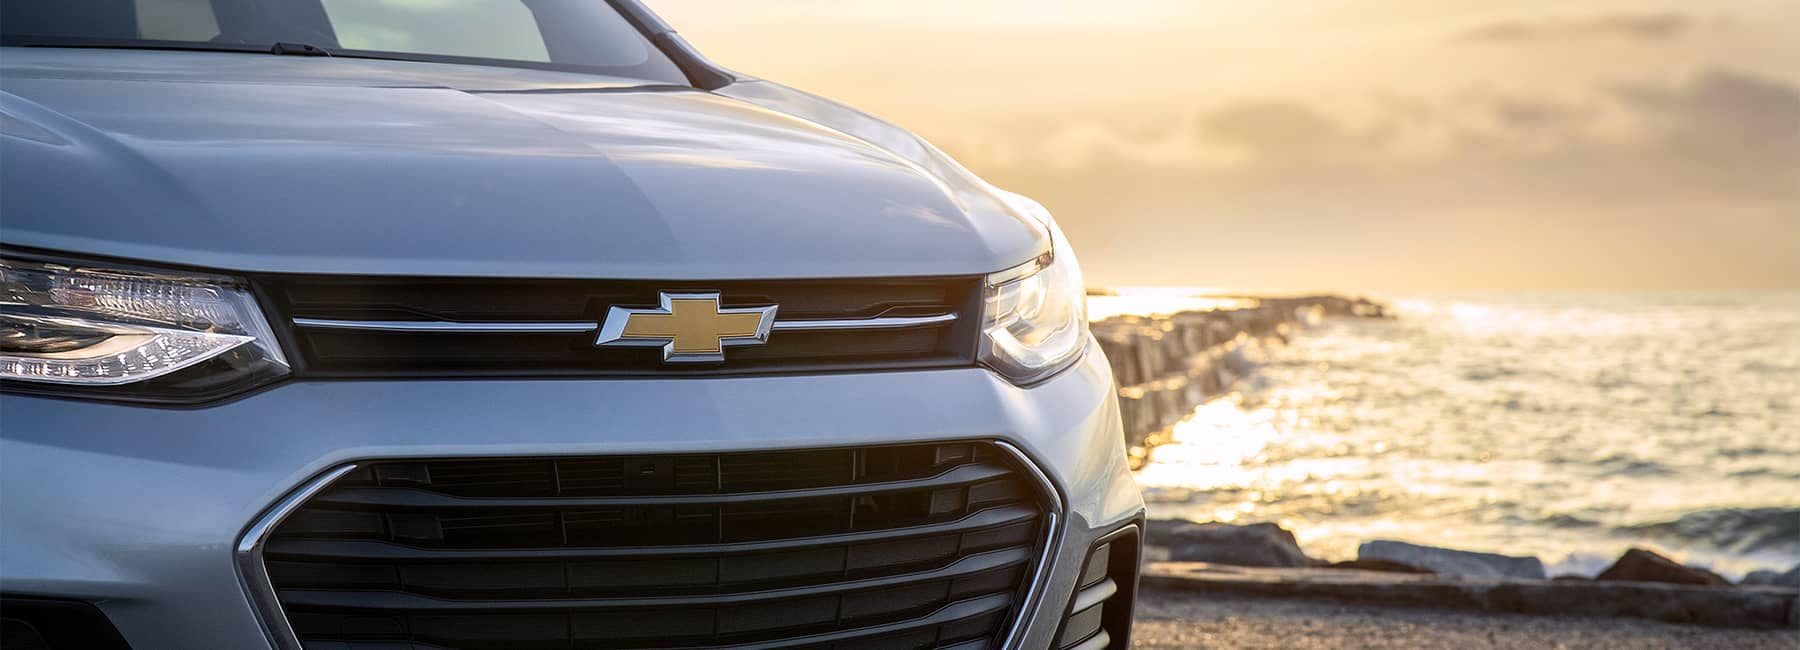 Closeup of the front of a white 2021 Chevrolet Trax